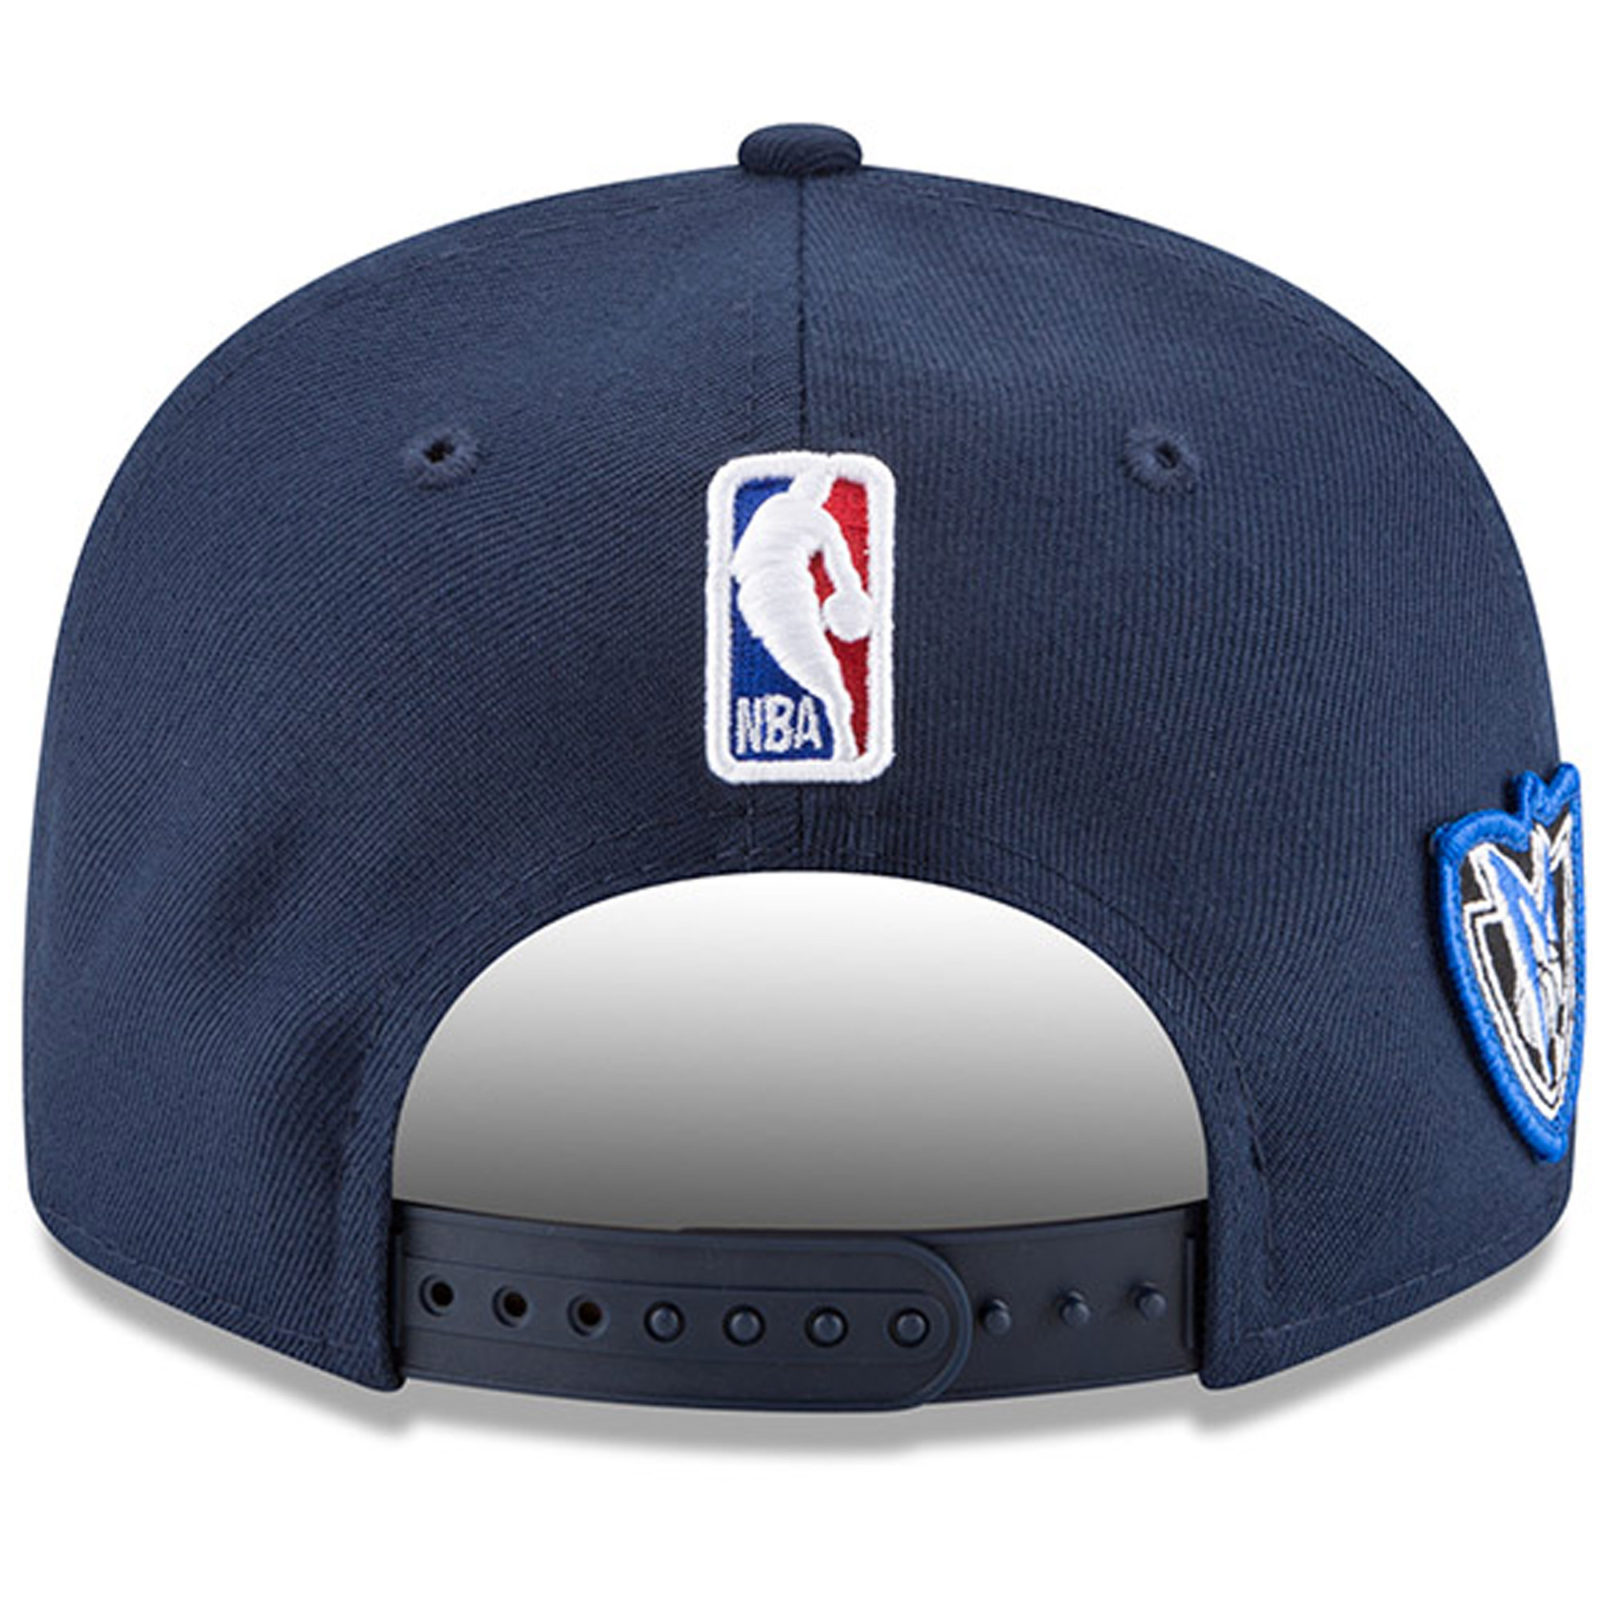 reputable site 97950 b165b ... coupon code for dallas mavericks new era 2018 draft 9fifty snapback adjustable  hat navy hat dreams